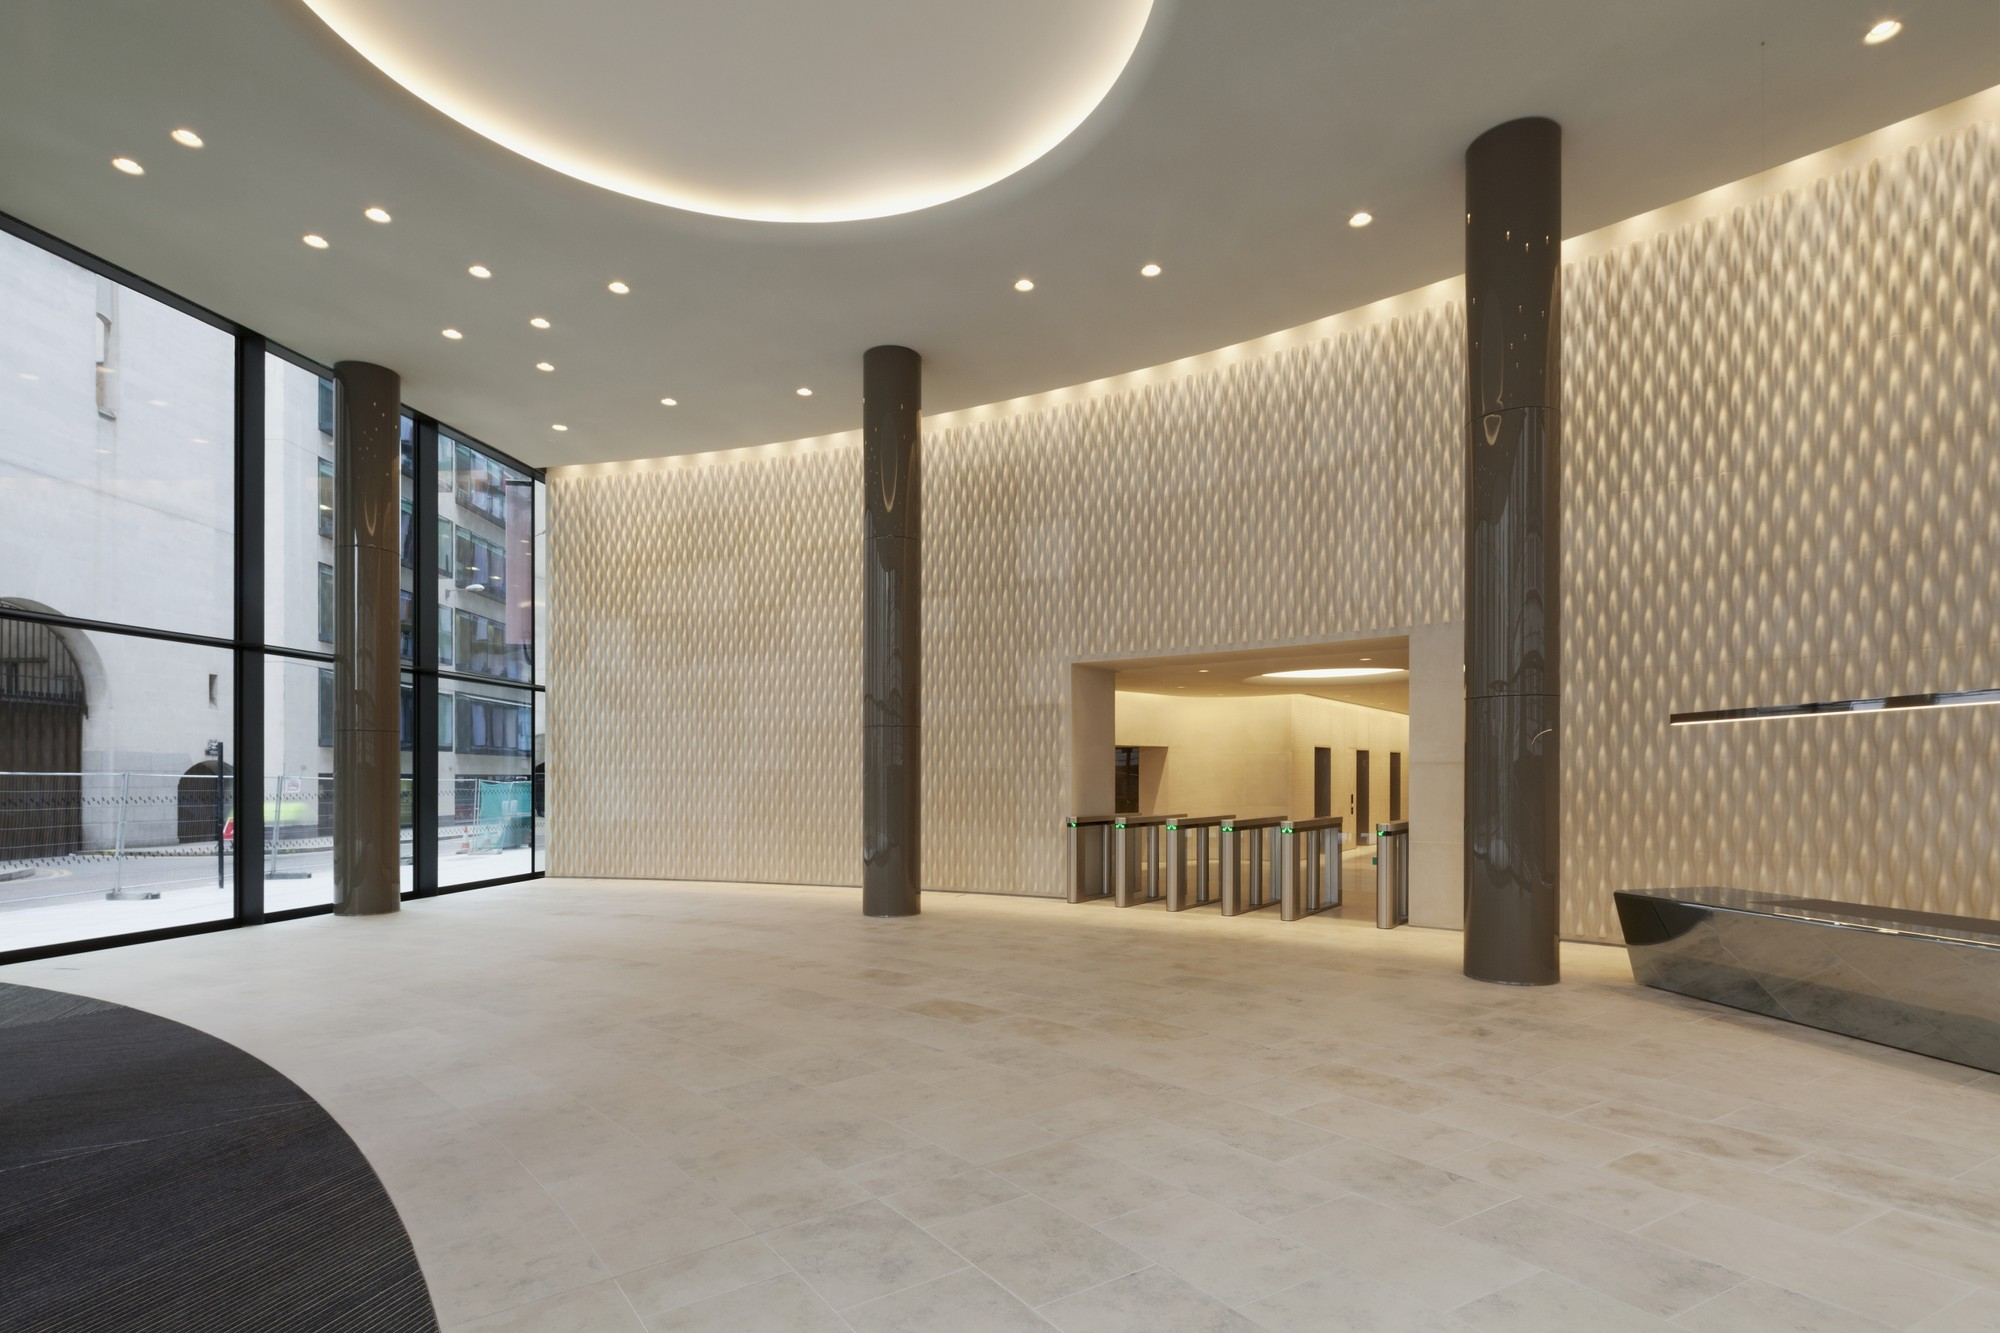 foyer of Two New Ludgate, Saierbruch Hutton. Image © Jan Bitter